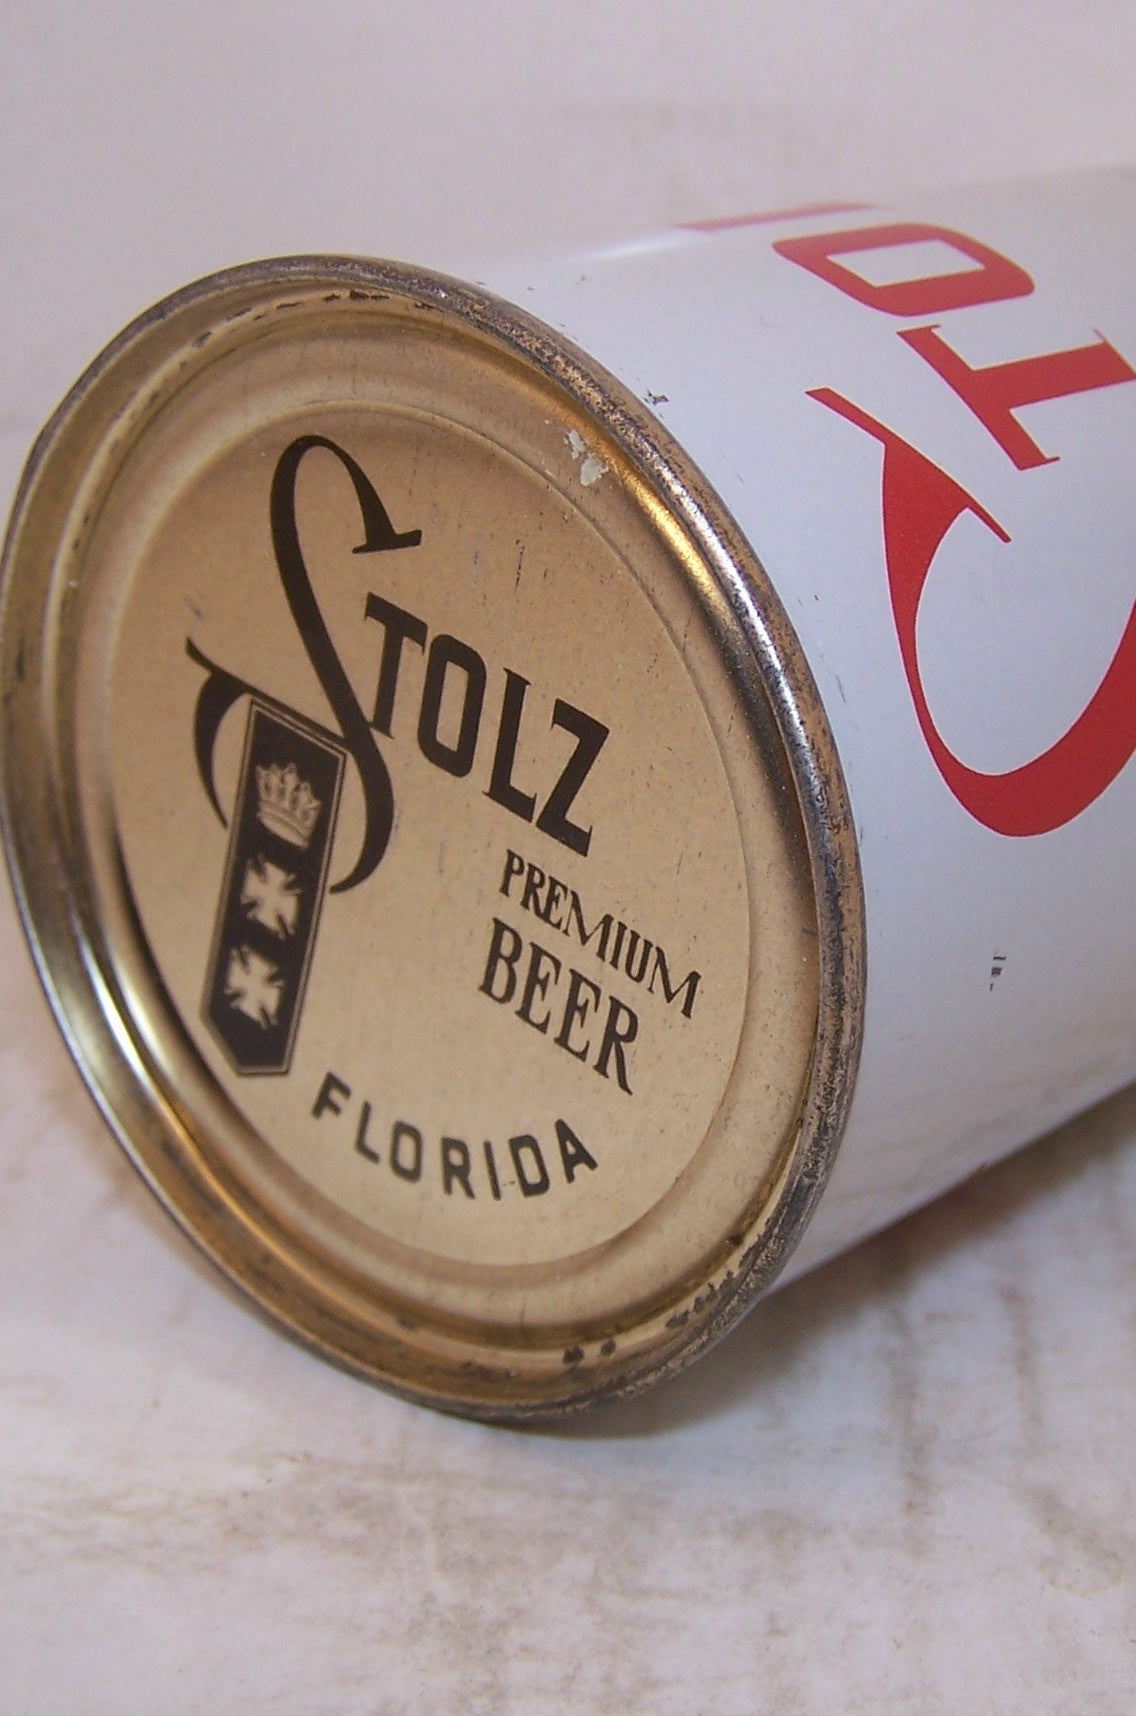 Stolz Premium Beer, USBC 137-2, Grade 1/1+ Traded on 03/06/16